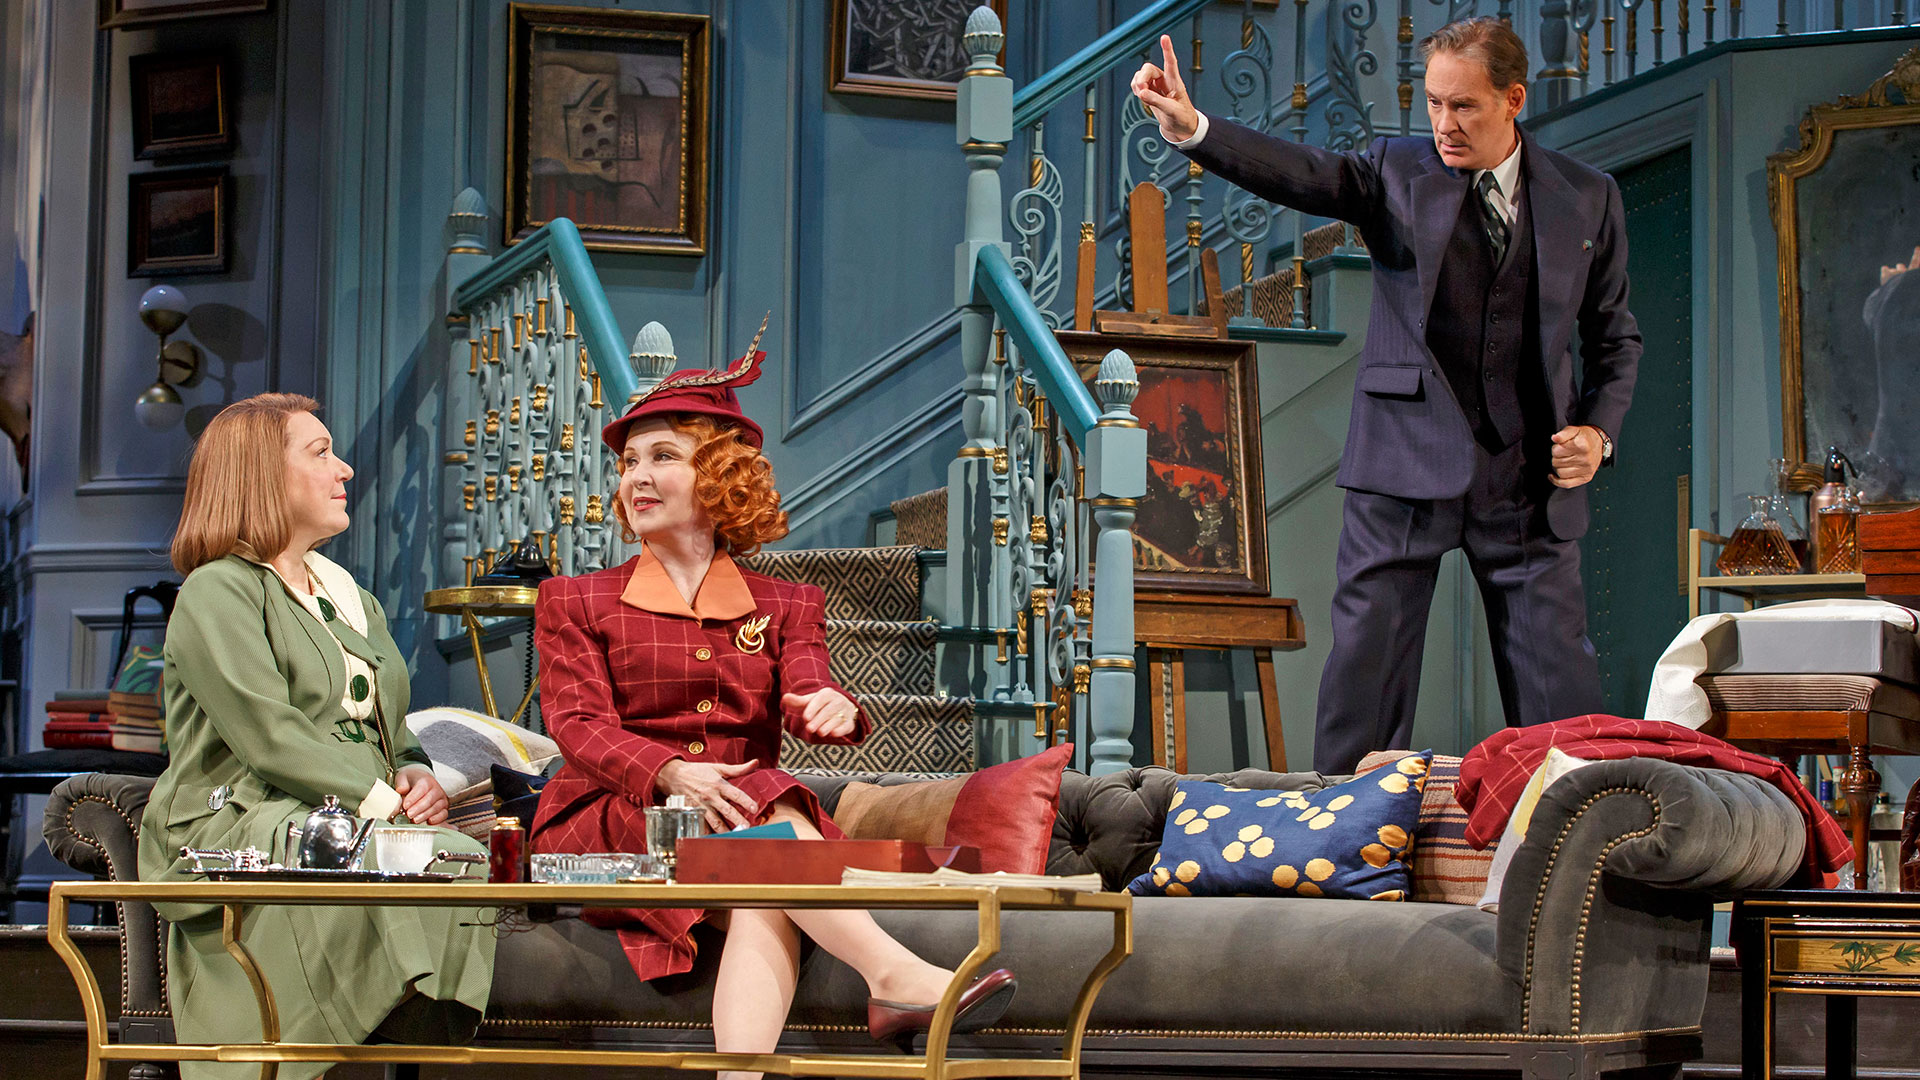 The Play Present Laughter and the Best Backstage Dramas